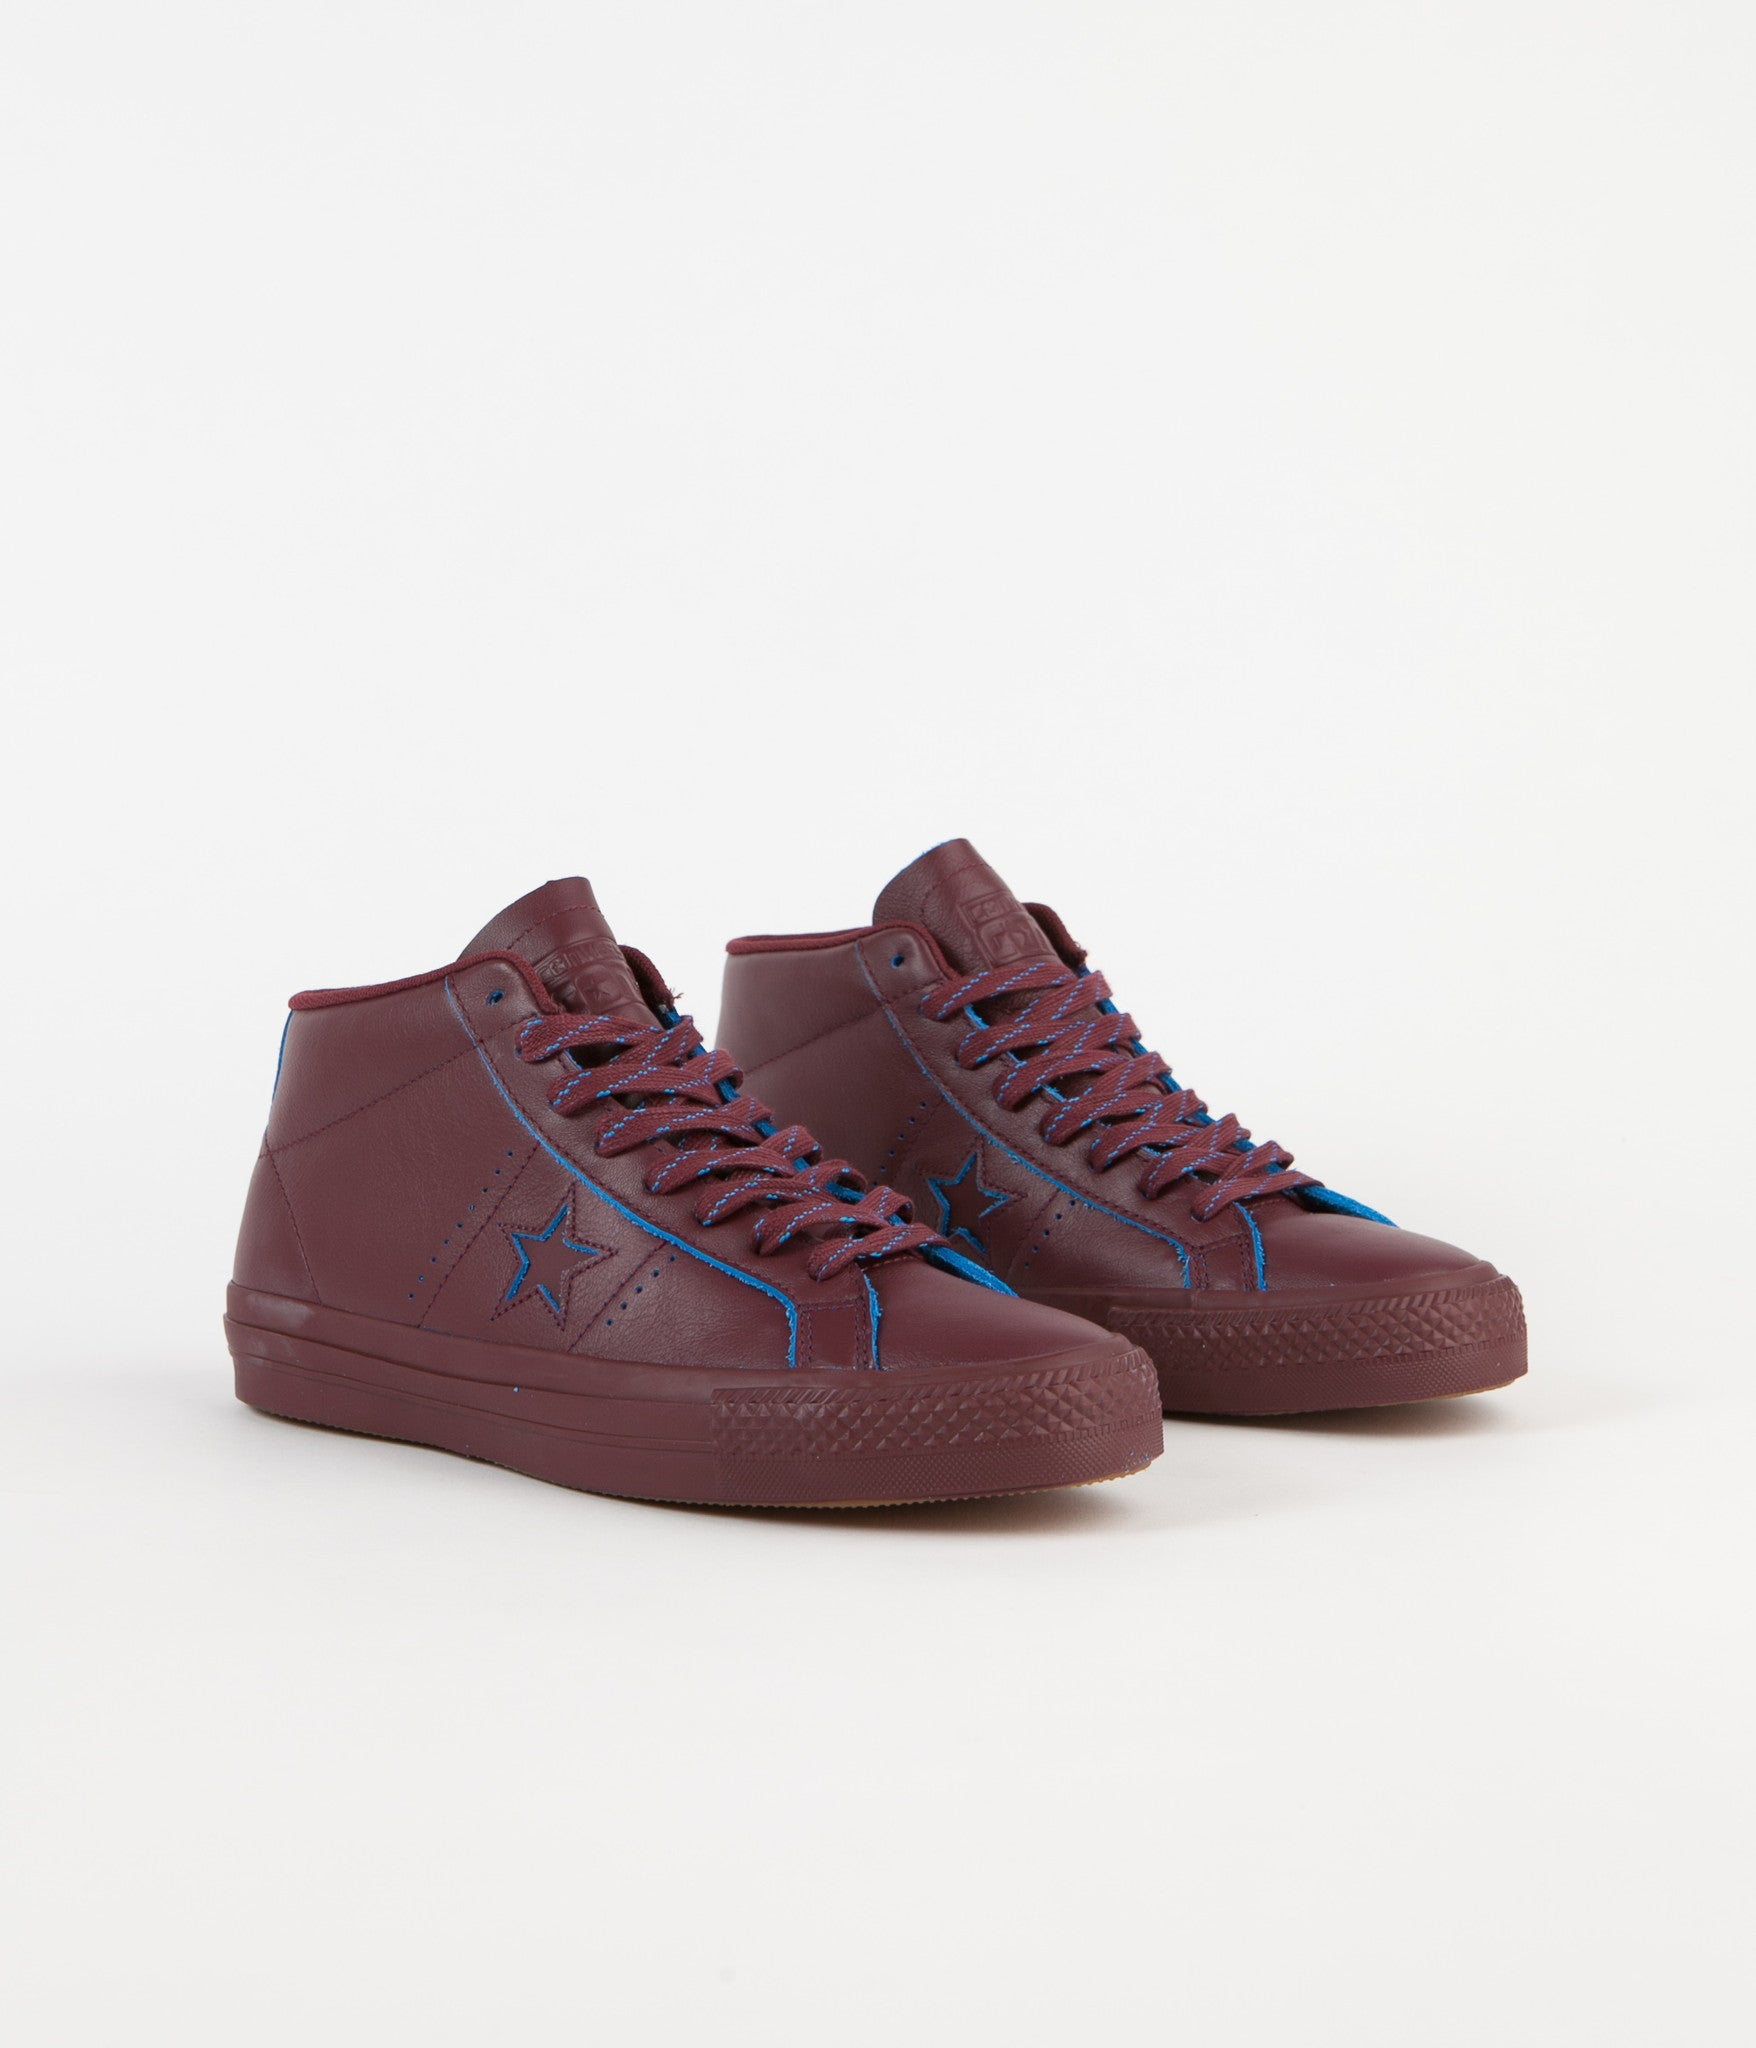 Converse One Star Pro Mid Shoes - Deep Bordeaux